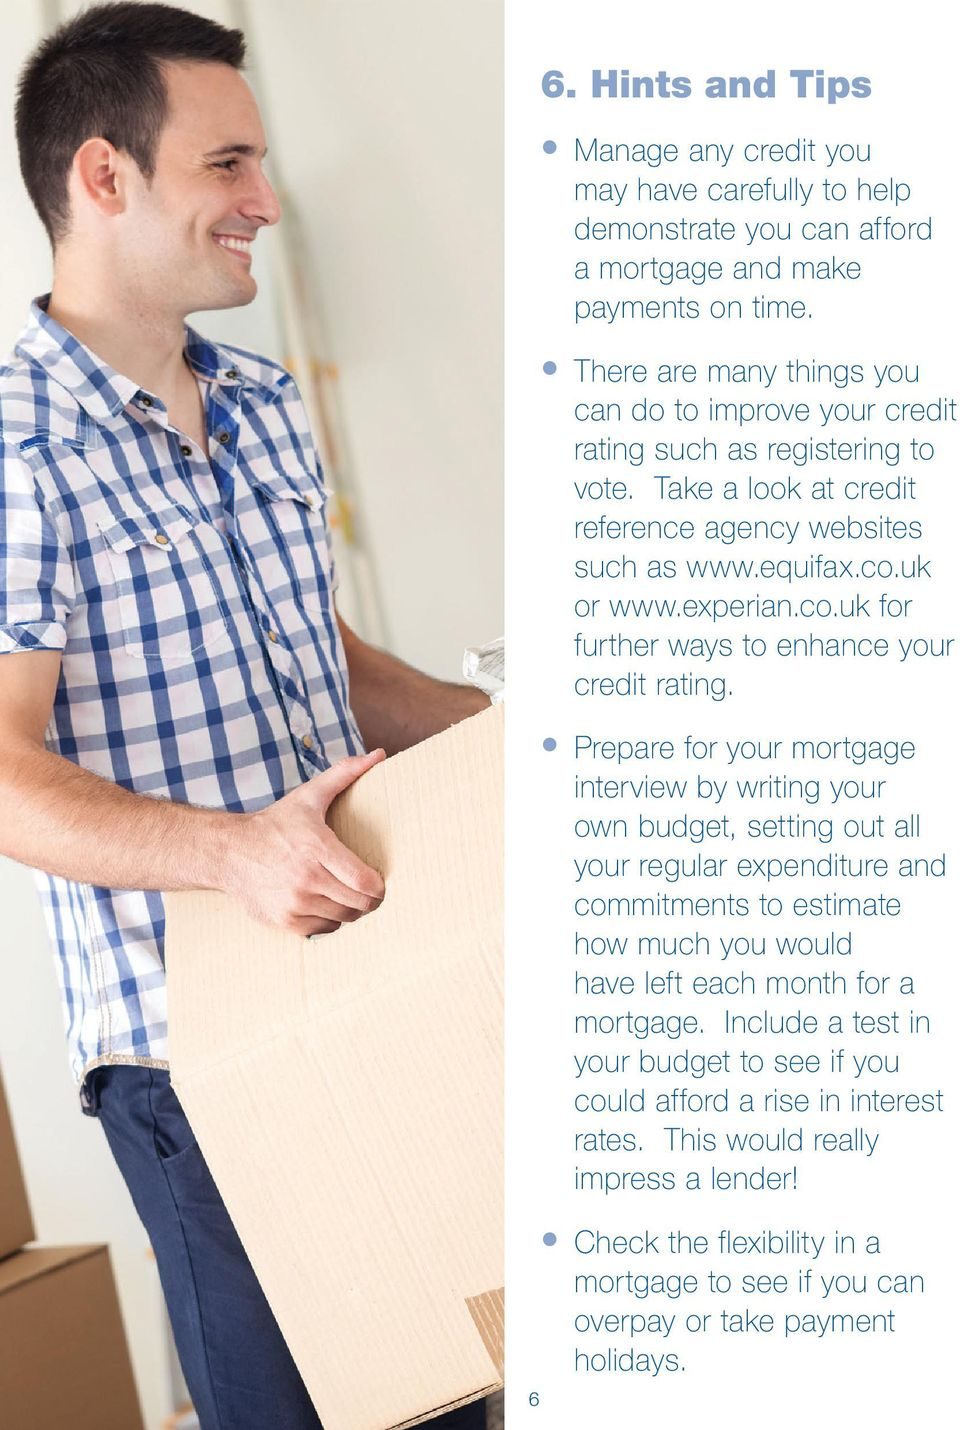 uk or www.experian.co.uk for further ways to enhance your credit rating.